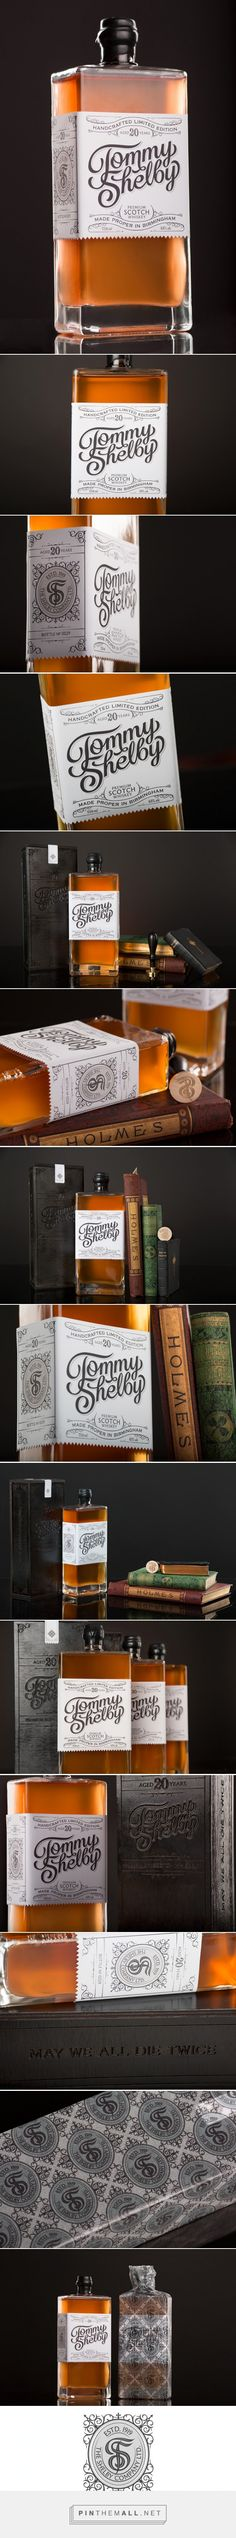 Tommy Shelby ‪#‎Whiskey‬ ‪#‎concept‬ ‪#‎packaging‬ designed by Scott Biersack - http://www.packagingoftheworld.com/2015/04/tommy-shelby-whiskey-student-project.html